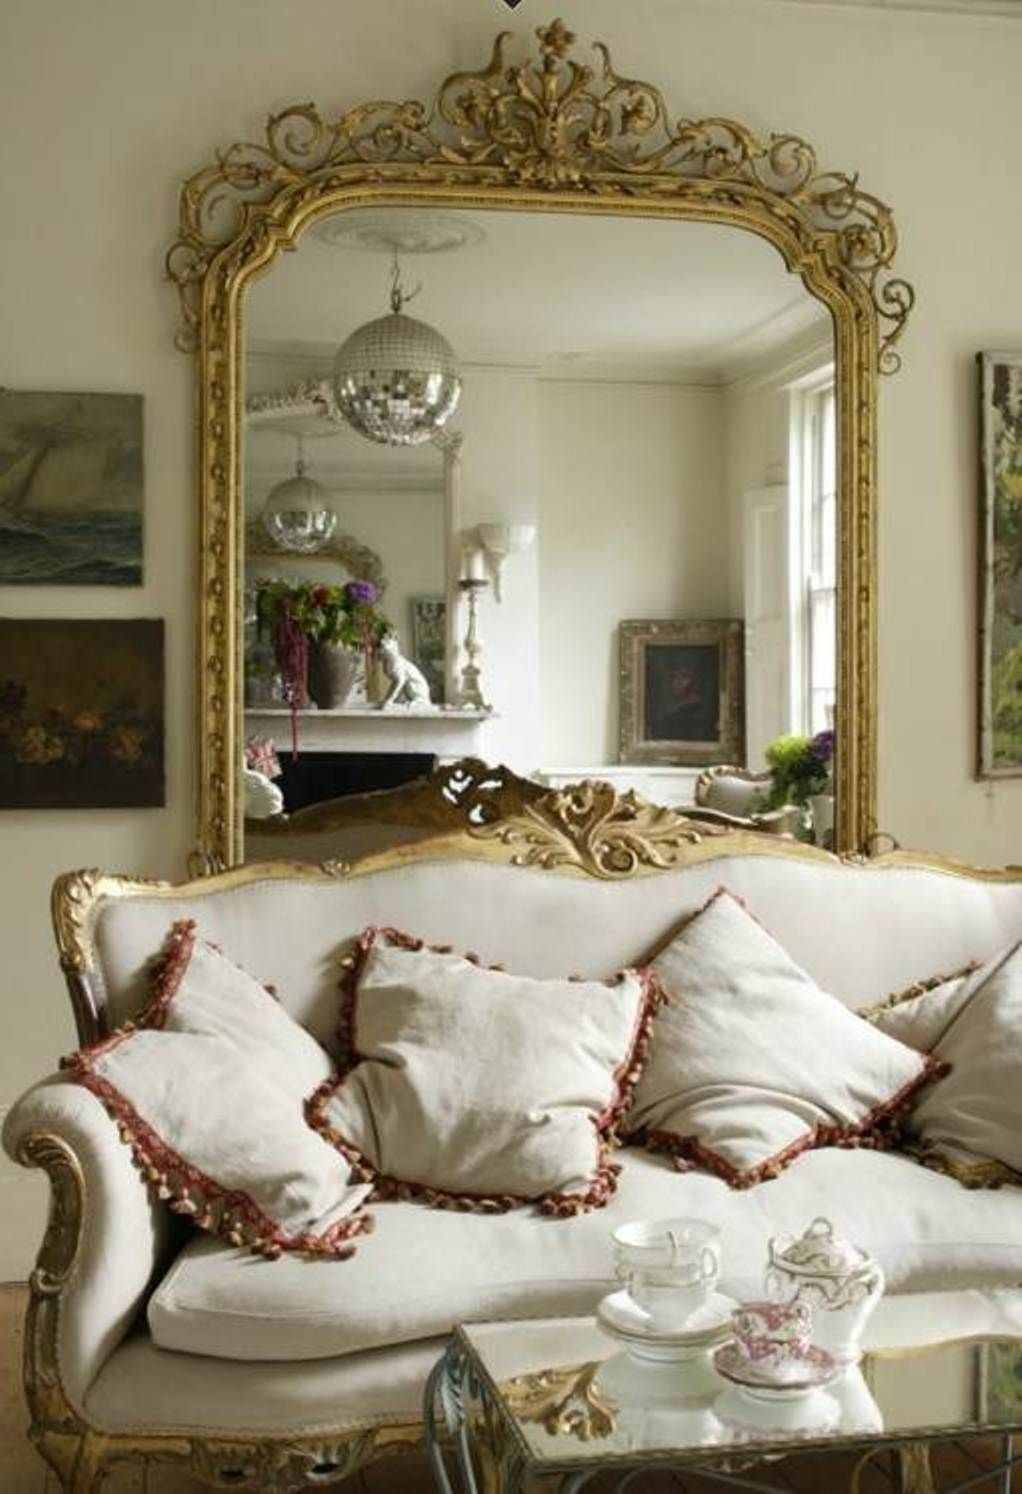 elegant mirrors living room. Cool Decorative Wall Mirrors for Living Room Add interest  light and depth to your living walls Walls